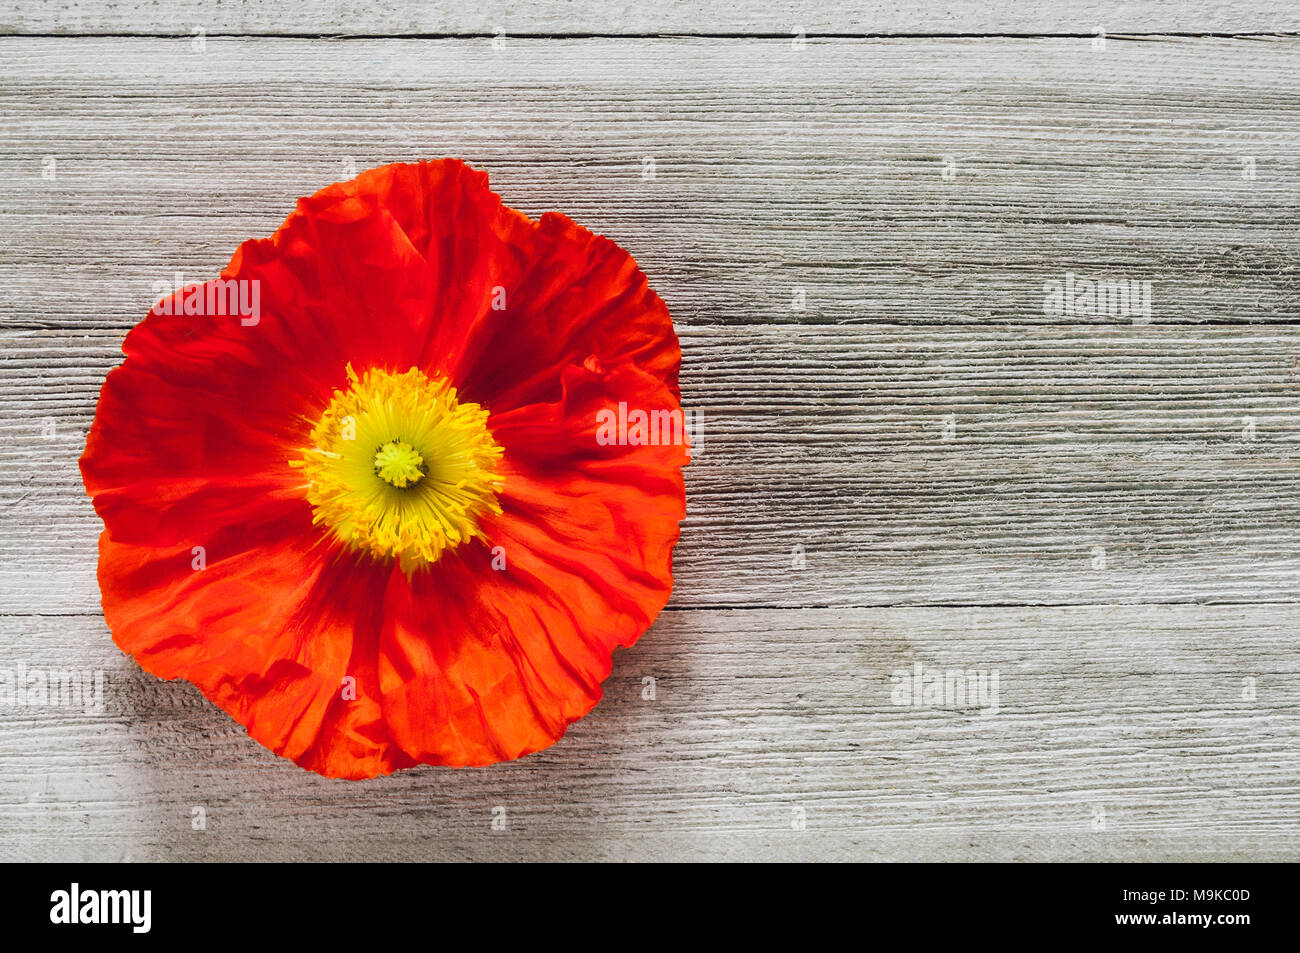 Single Orange Poppy Flower on White Rustic Table with Space for Copy - Stock Image